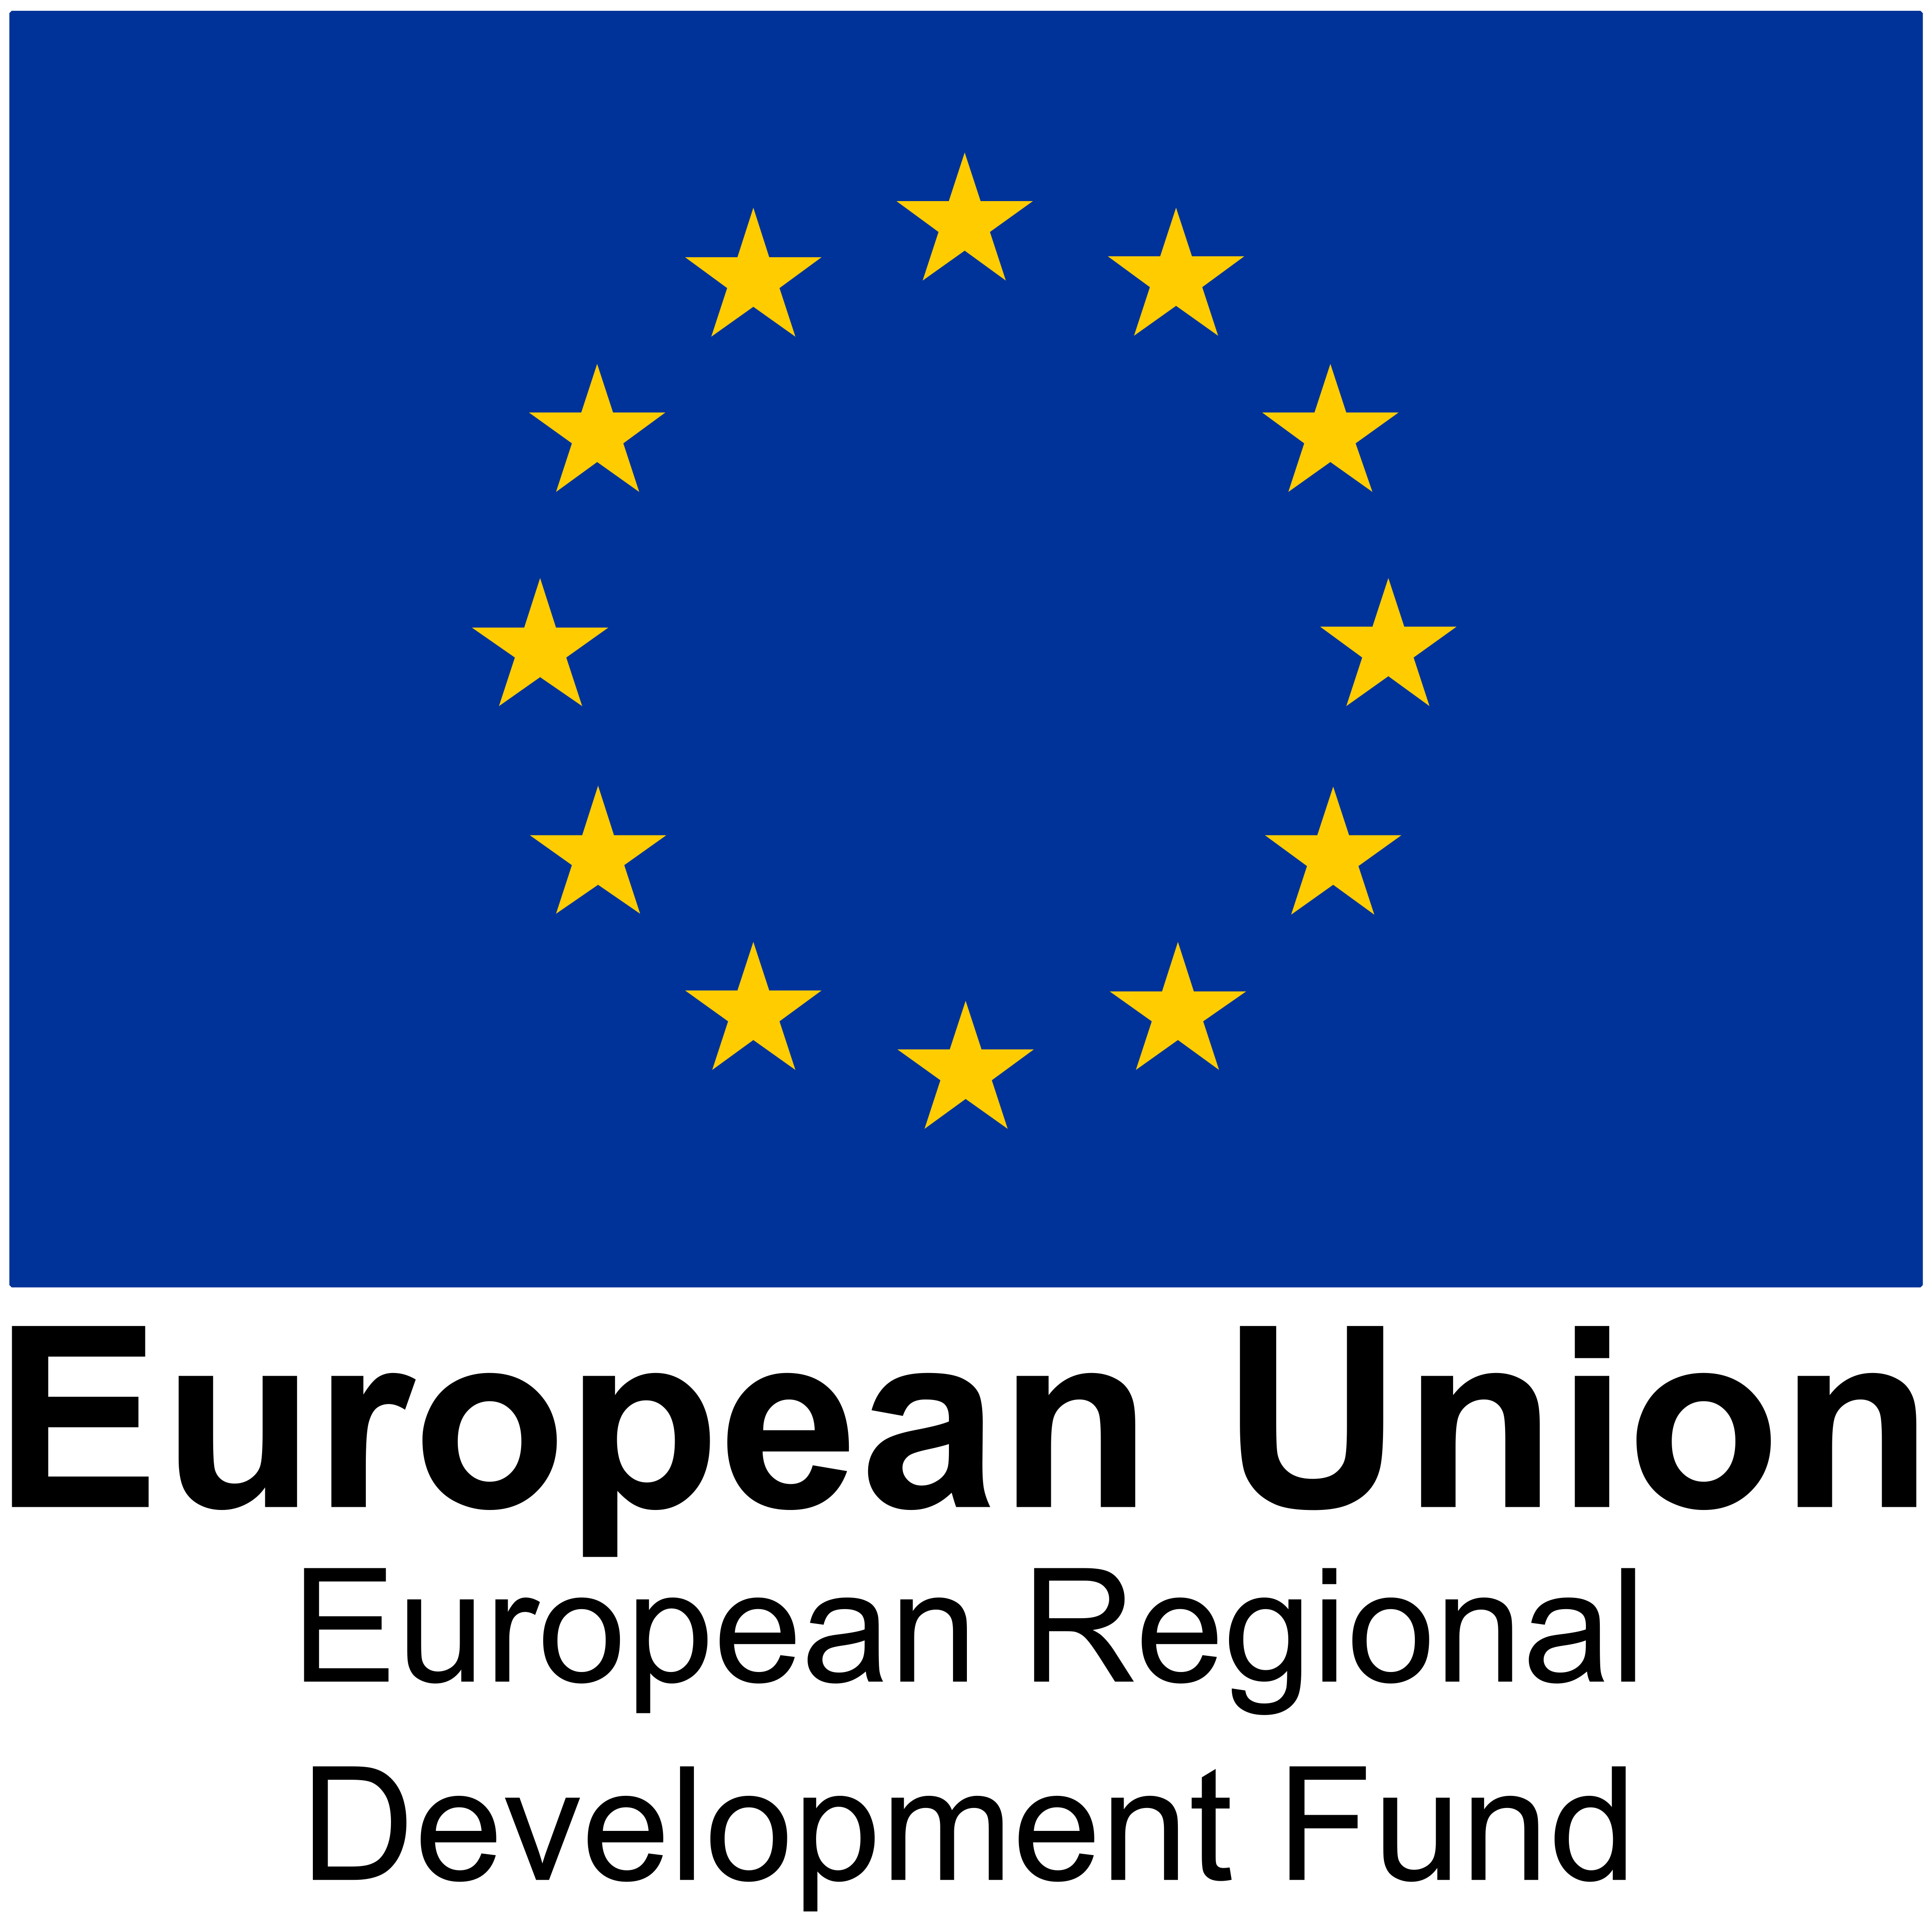 The ERDF logo